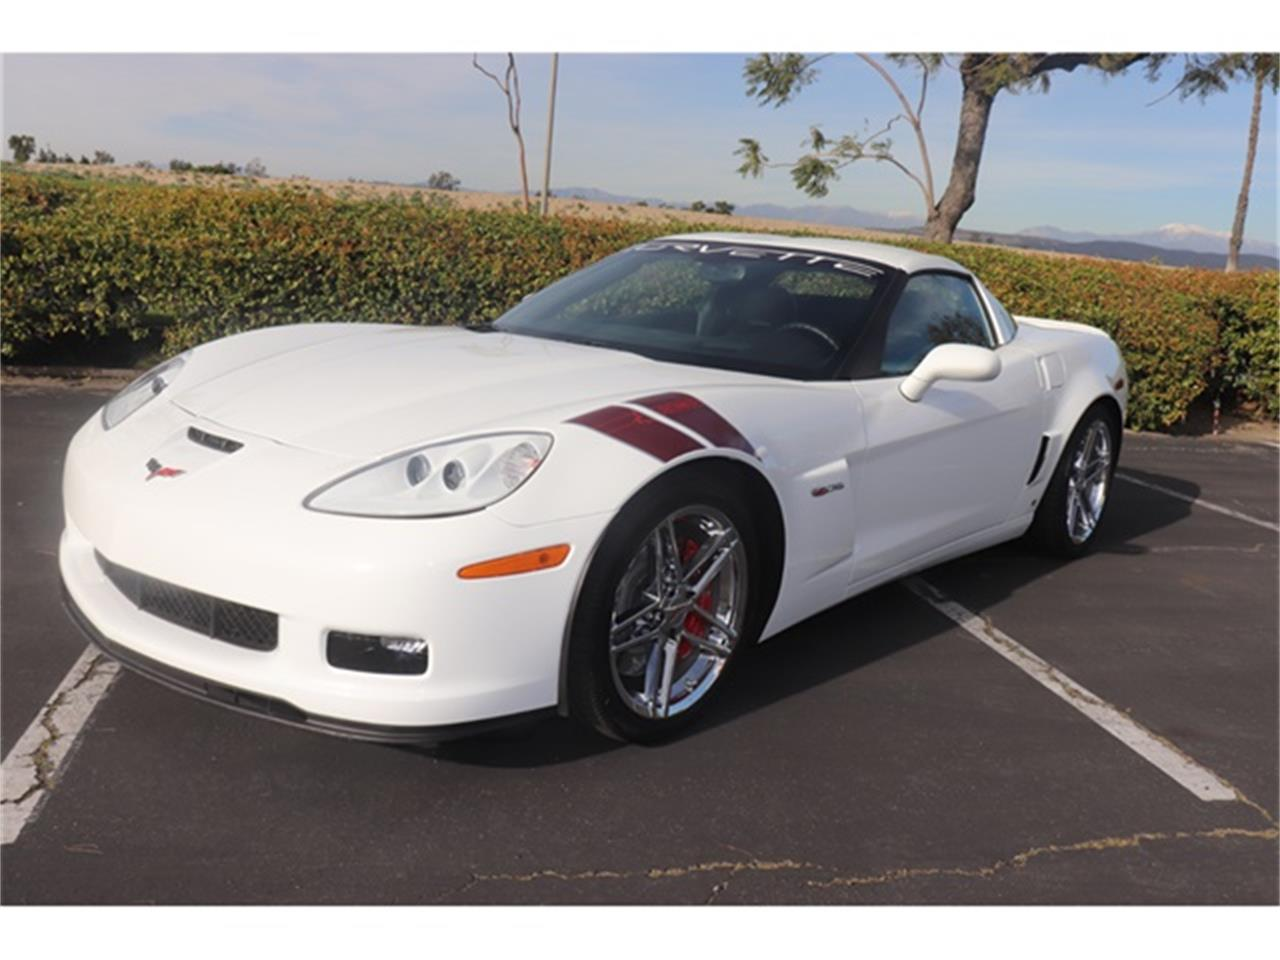 Large Picture of 2007 Chevrolet Corvette Z06 located in California - $42,900.00 - PD36